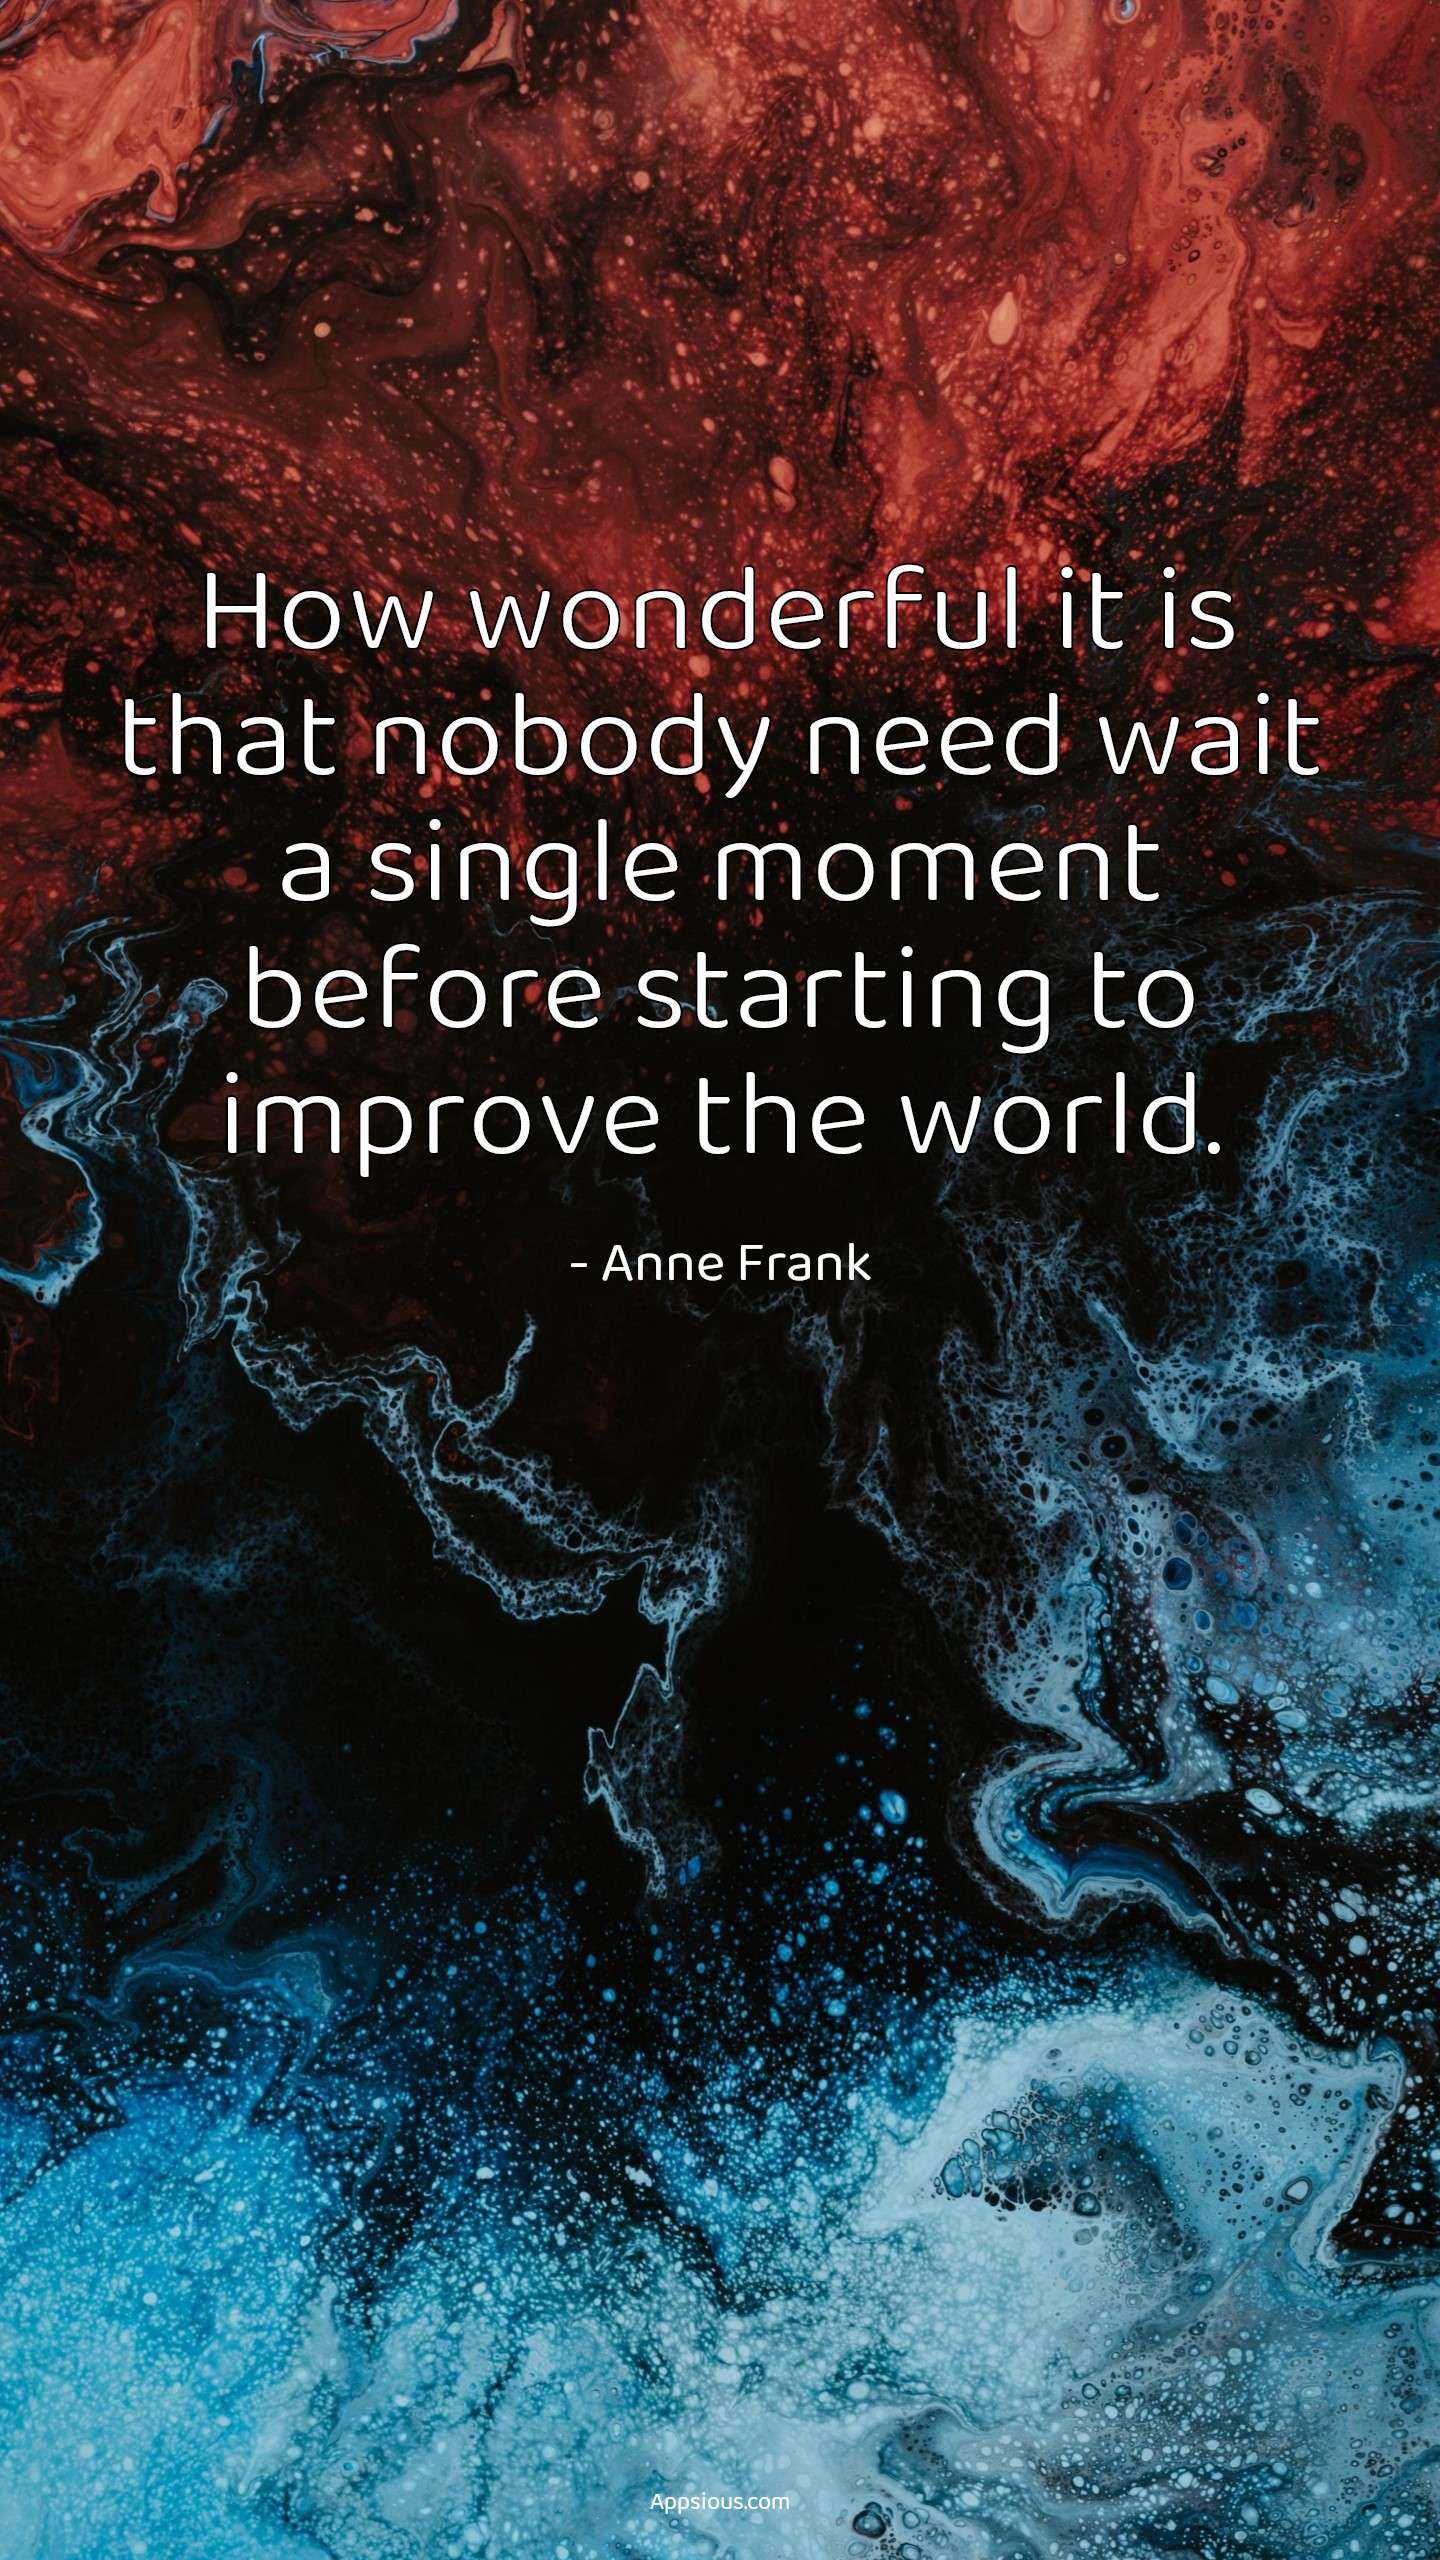 How wonderful it is that nobody need wait a single moment before starting to improve the world.